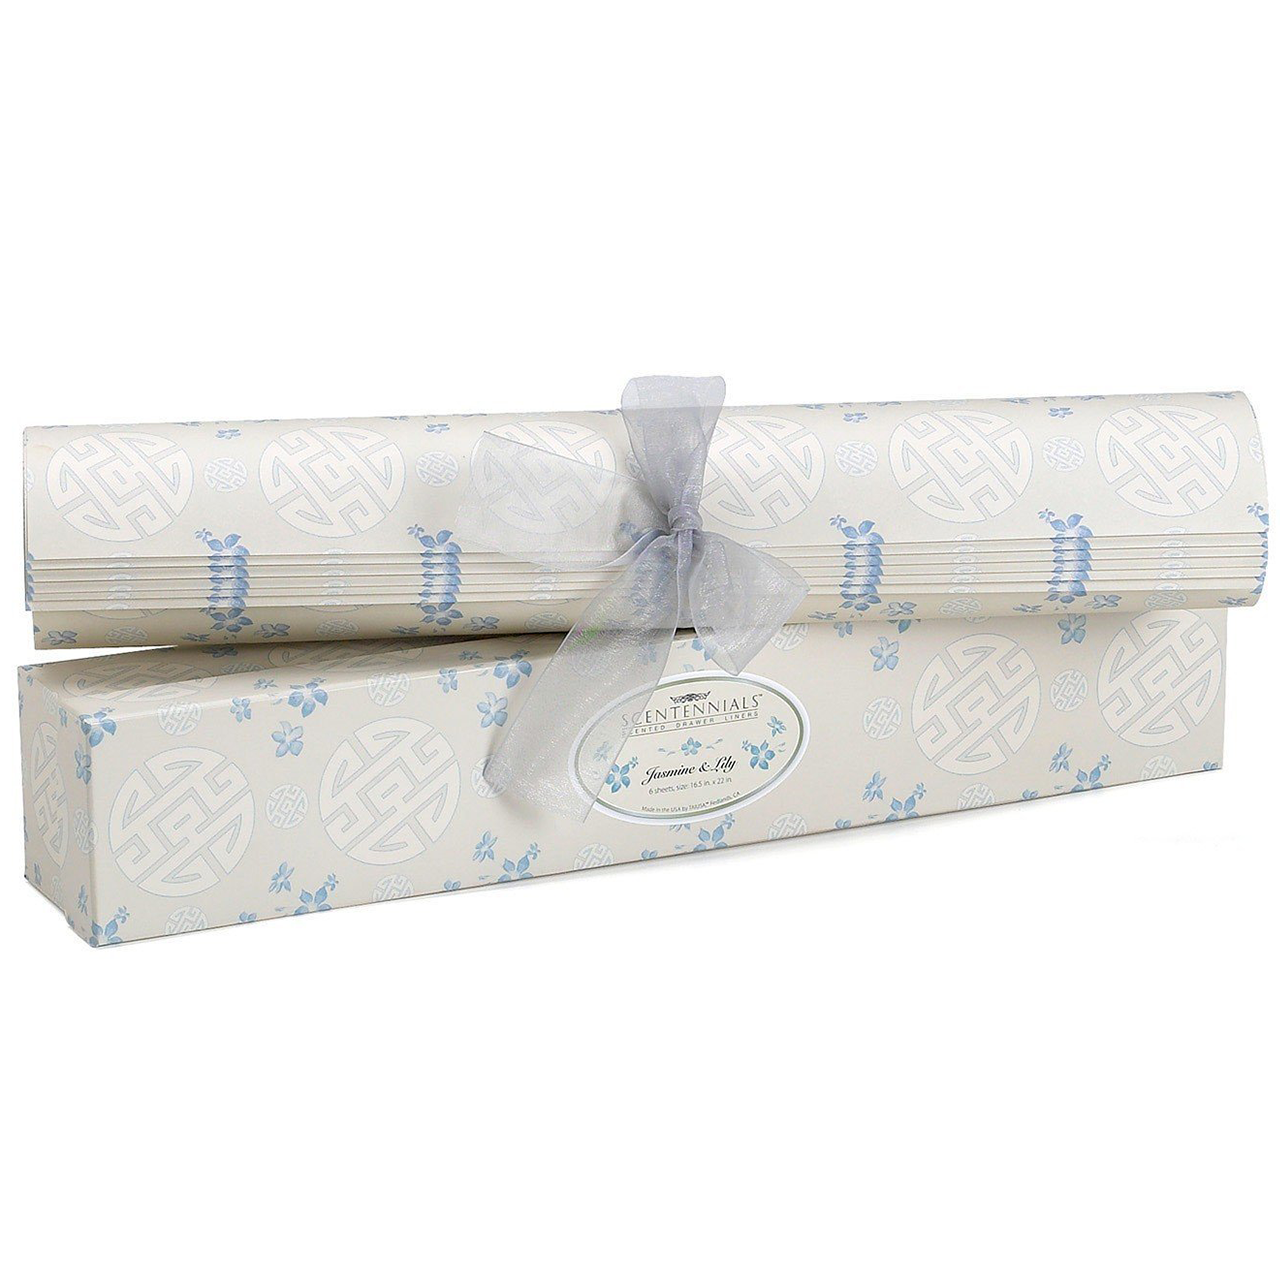 Scentennials Jasmine Lily Scented Drawer Liners James